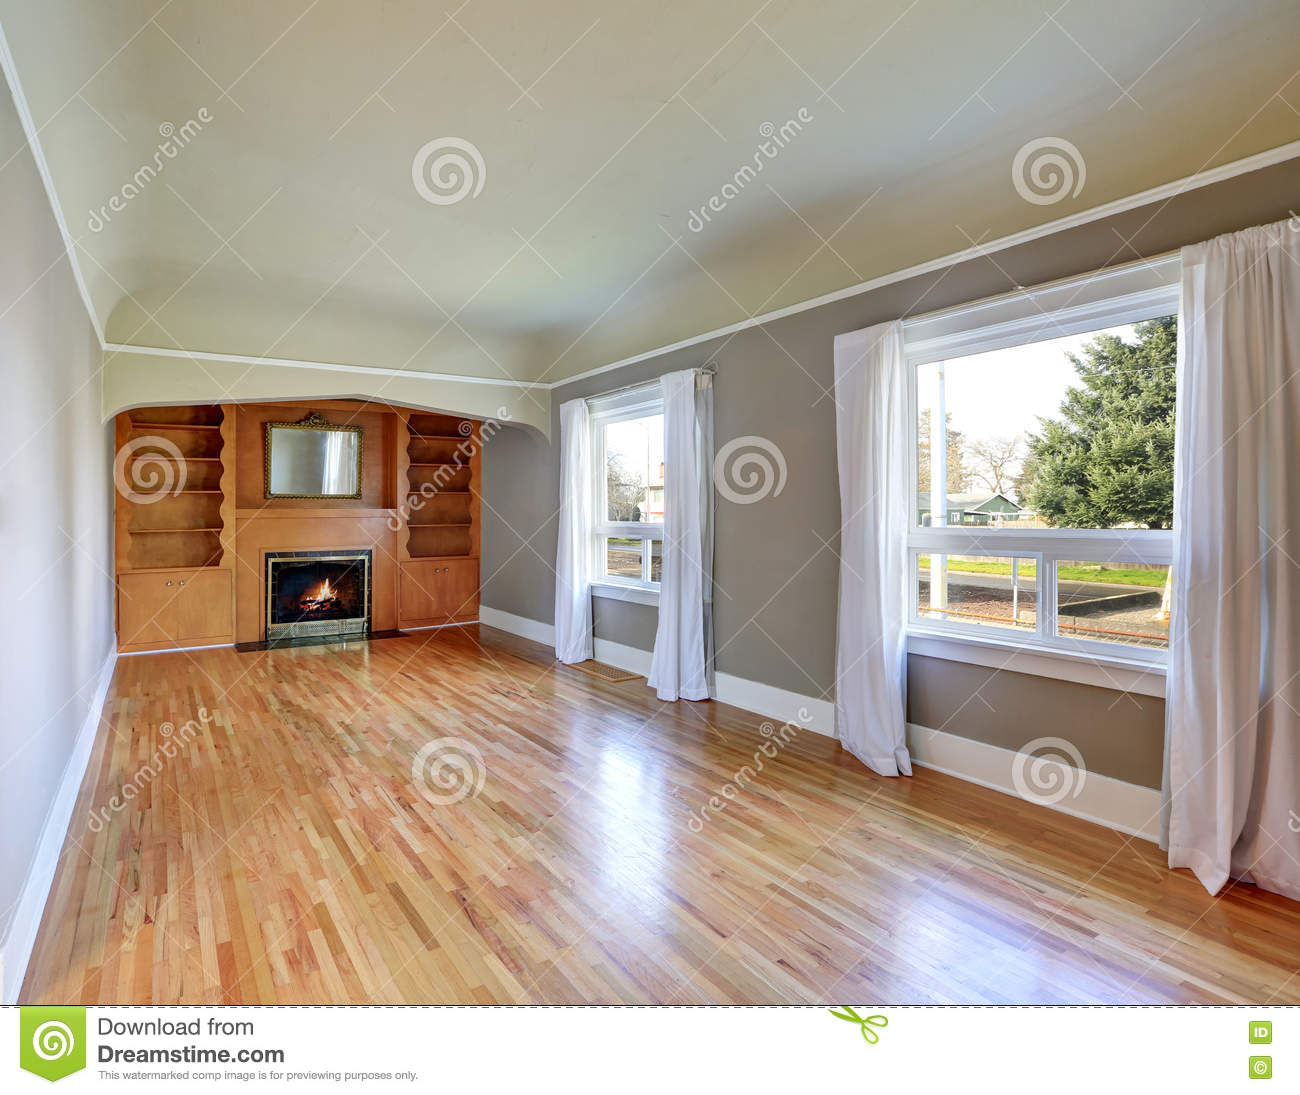 Unfurnished Living Room Interior In Old Craftsman House Royalty Free Stock  Photo Part 39